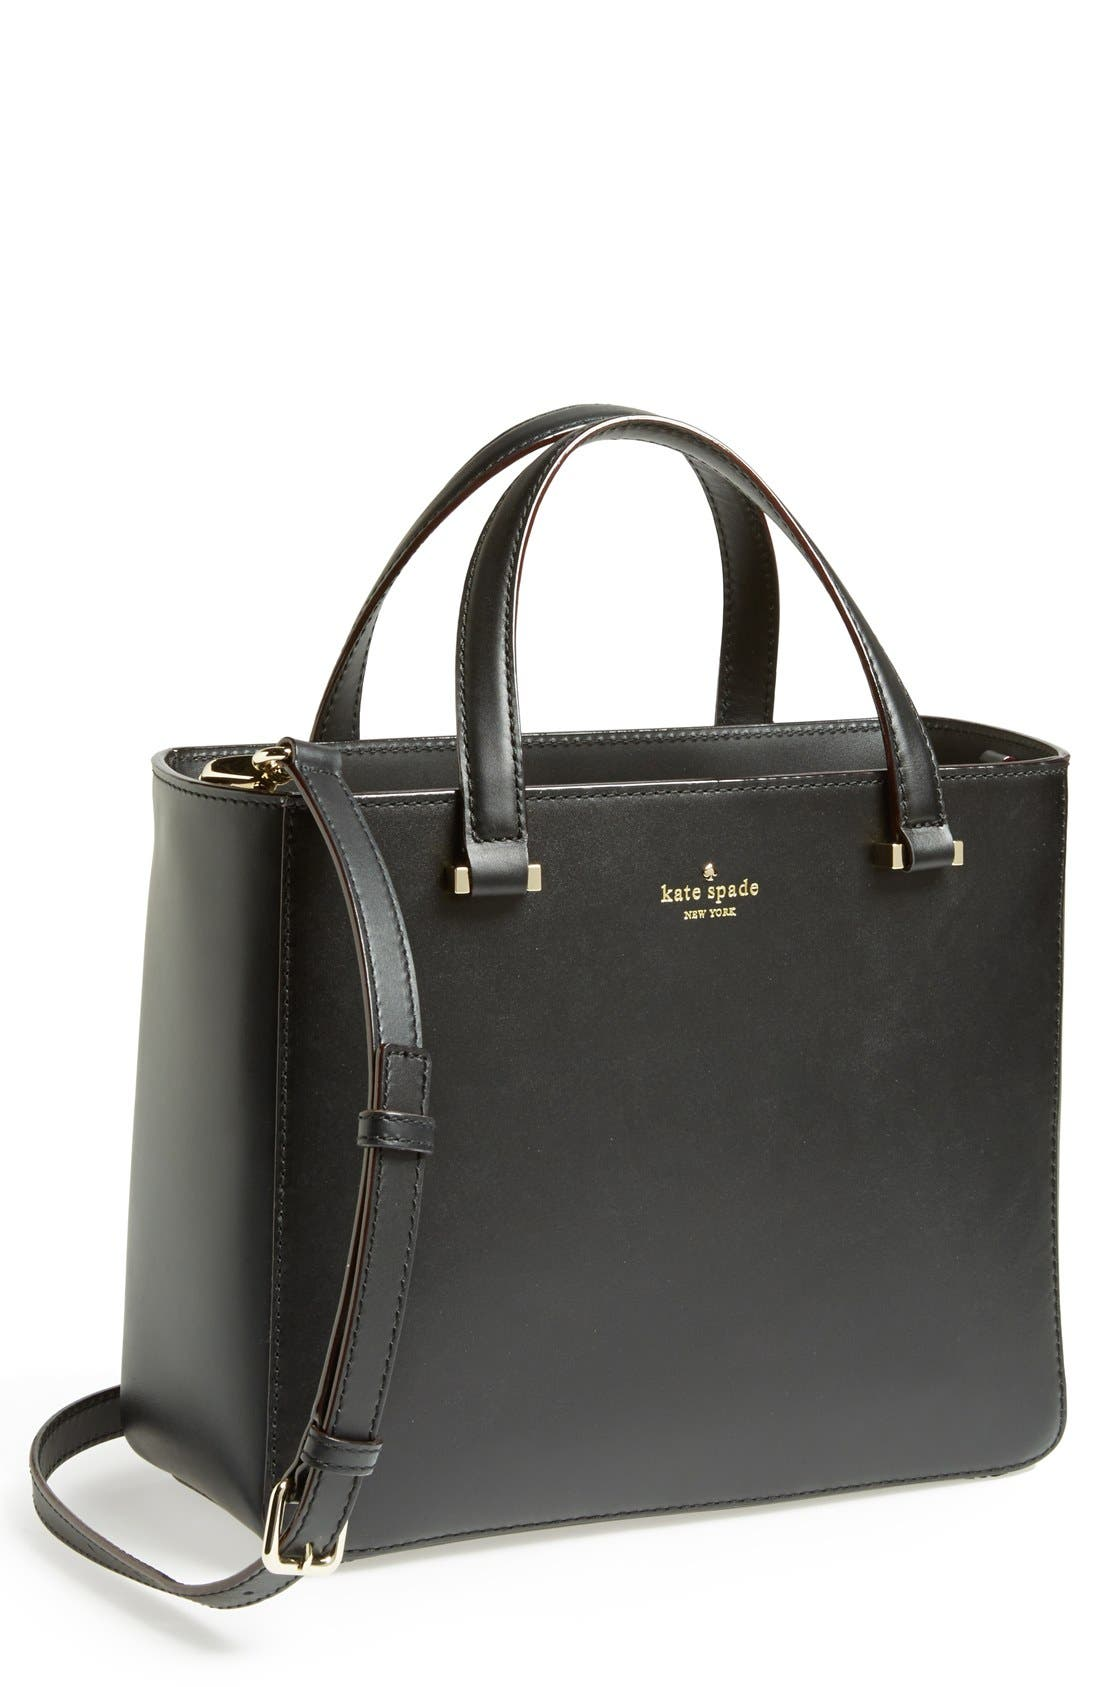 KATE SPADE NEW YORK 'park avenue sweetheart' leather crossbody tote, Main, color, 001